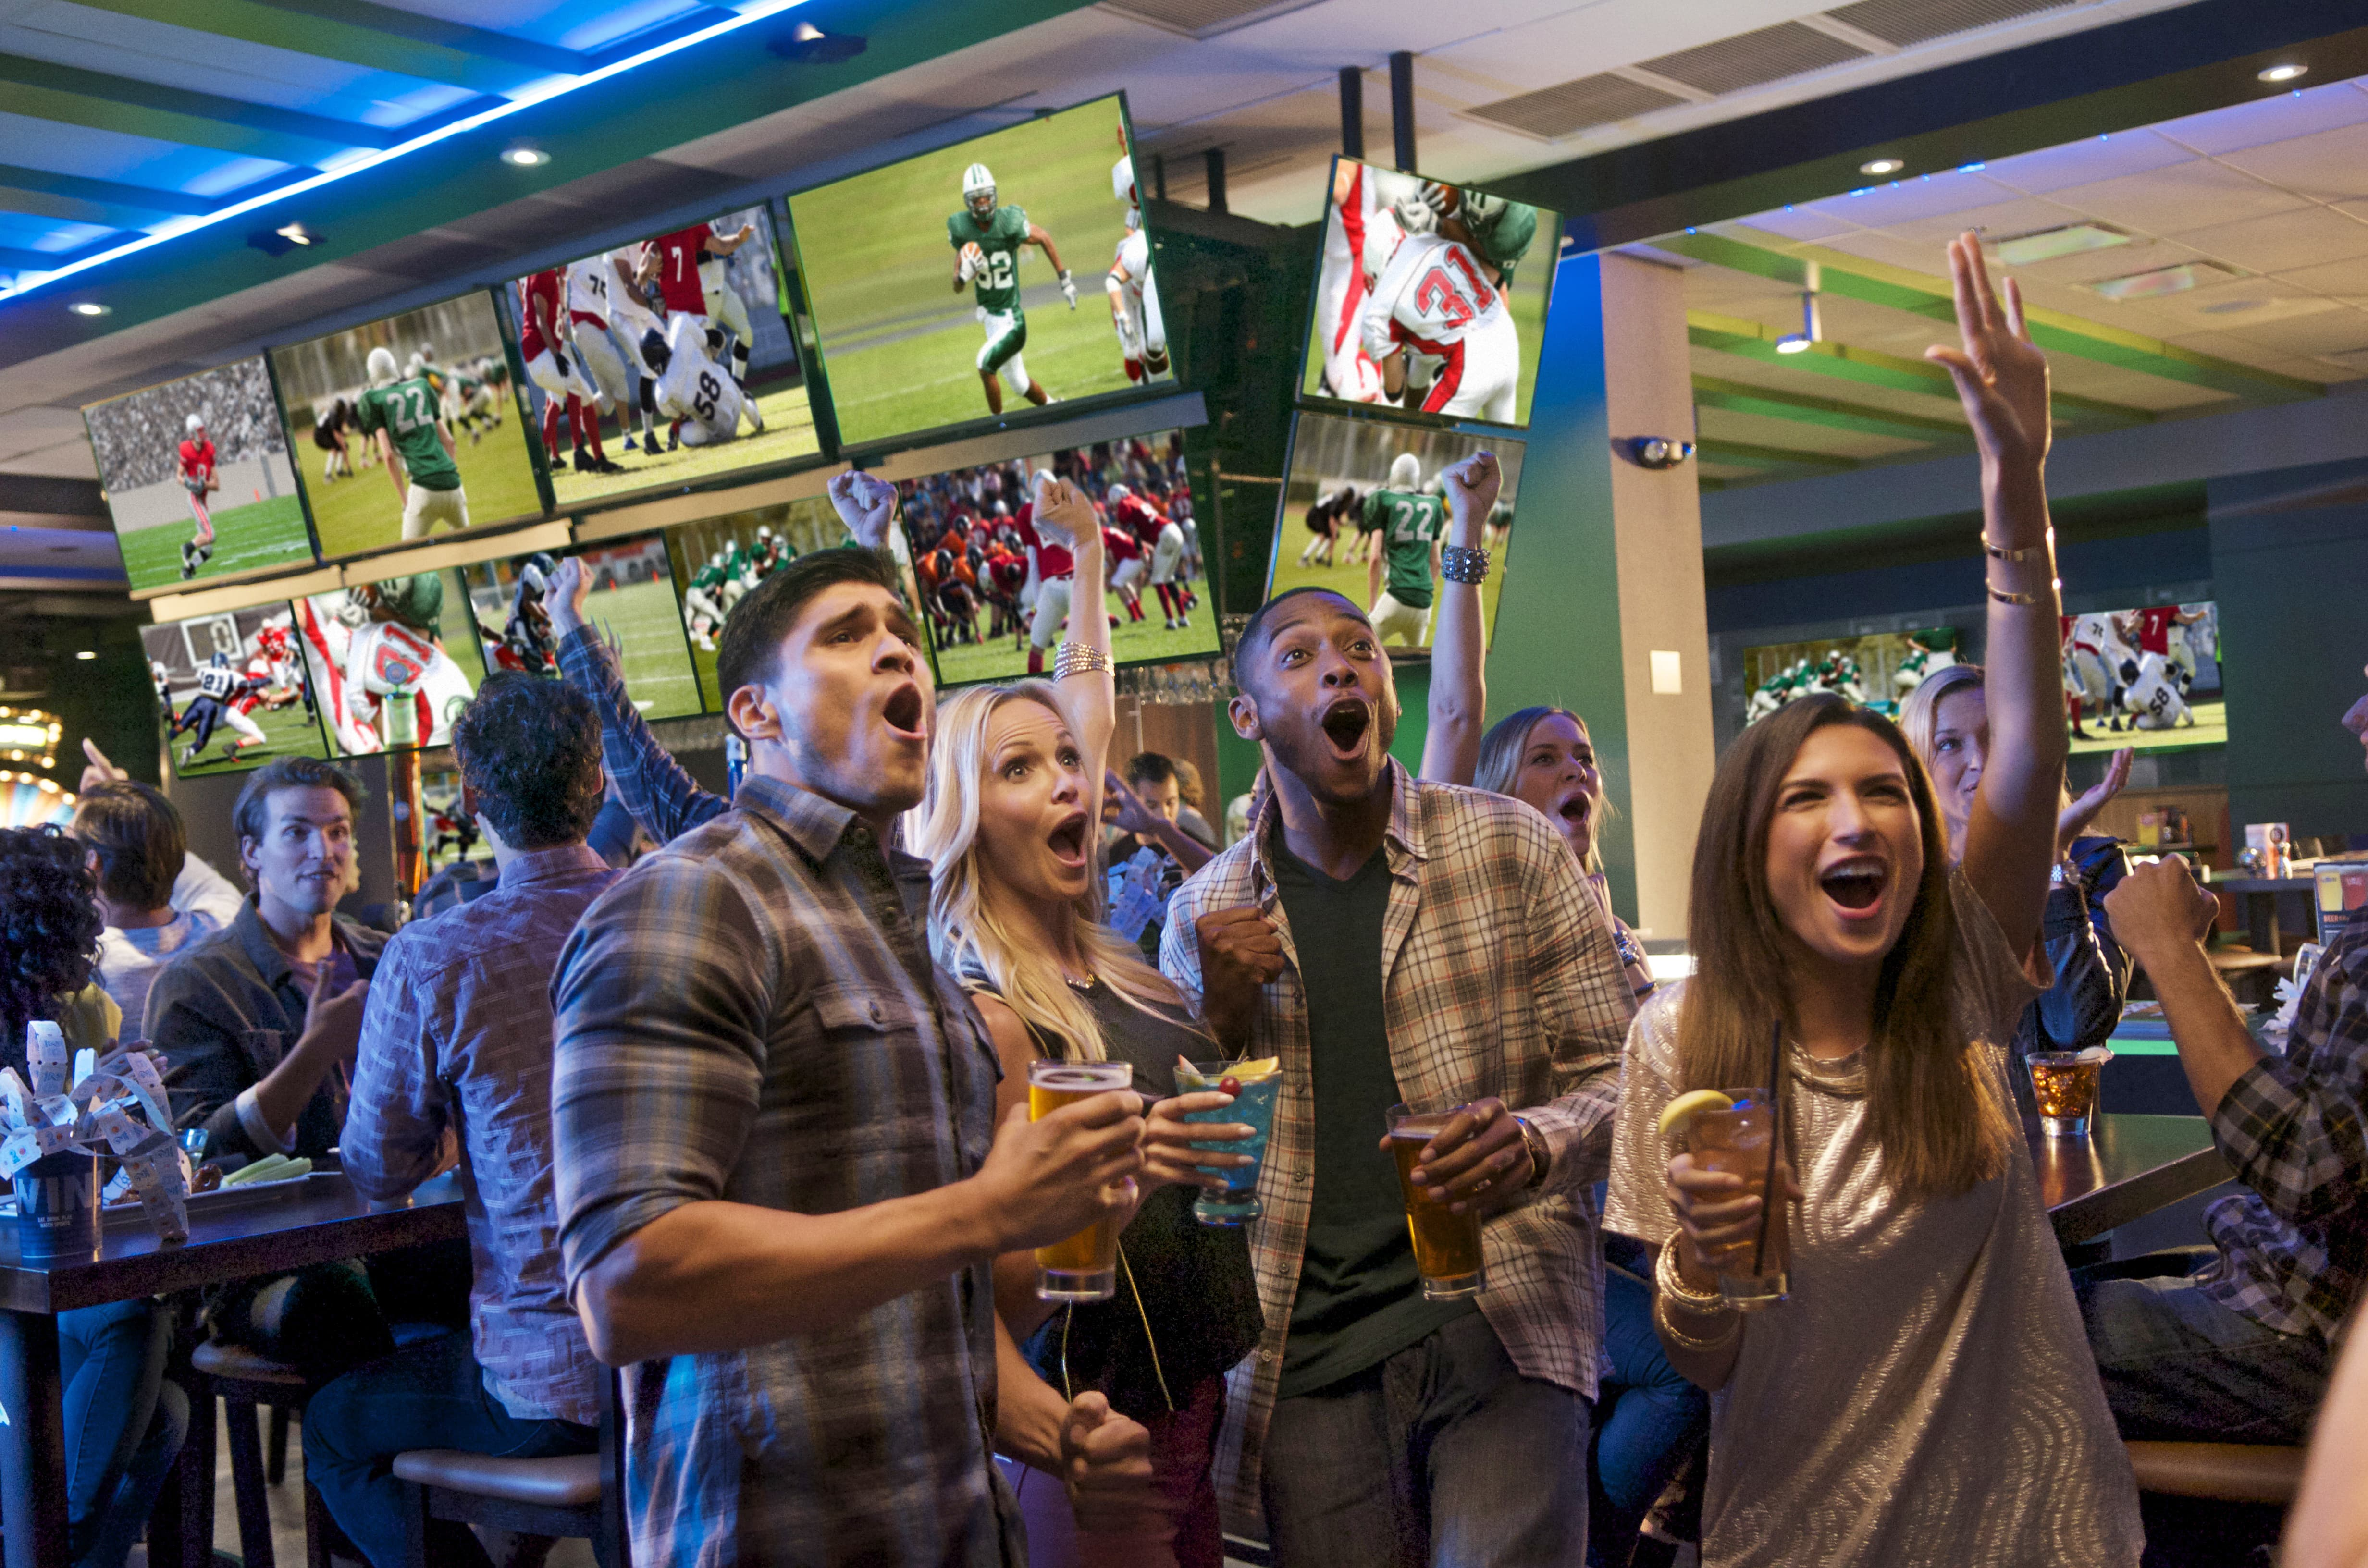 Friends Reacting in Sports Bar